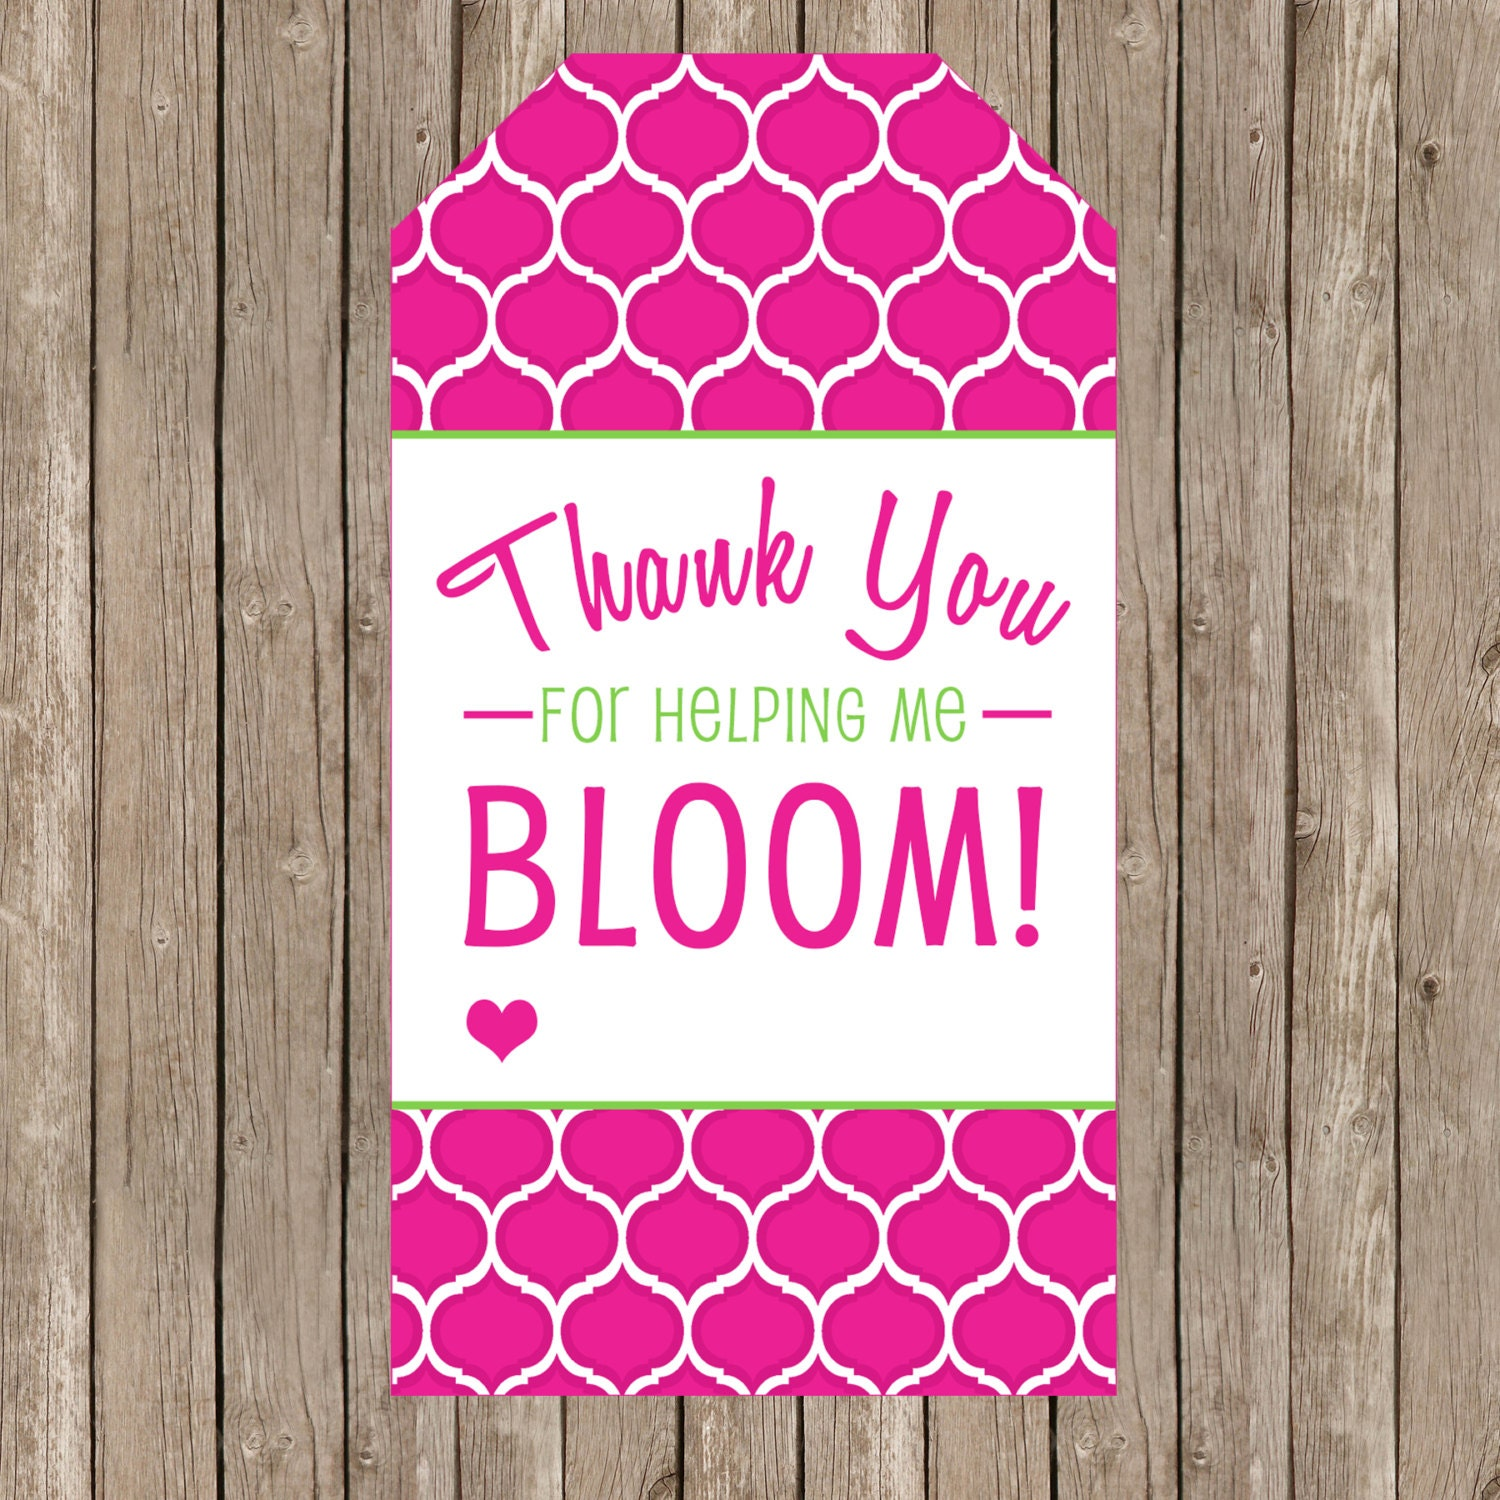 photo regarding Thanks for Helping Me Bloom Printable known as Thank By yourself For Encouraging Me Bloom Apple Flower Offers of the Working day